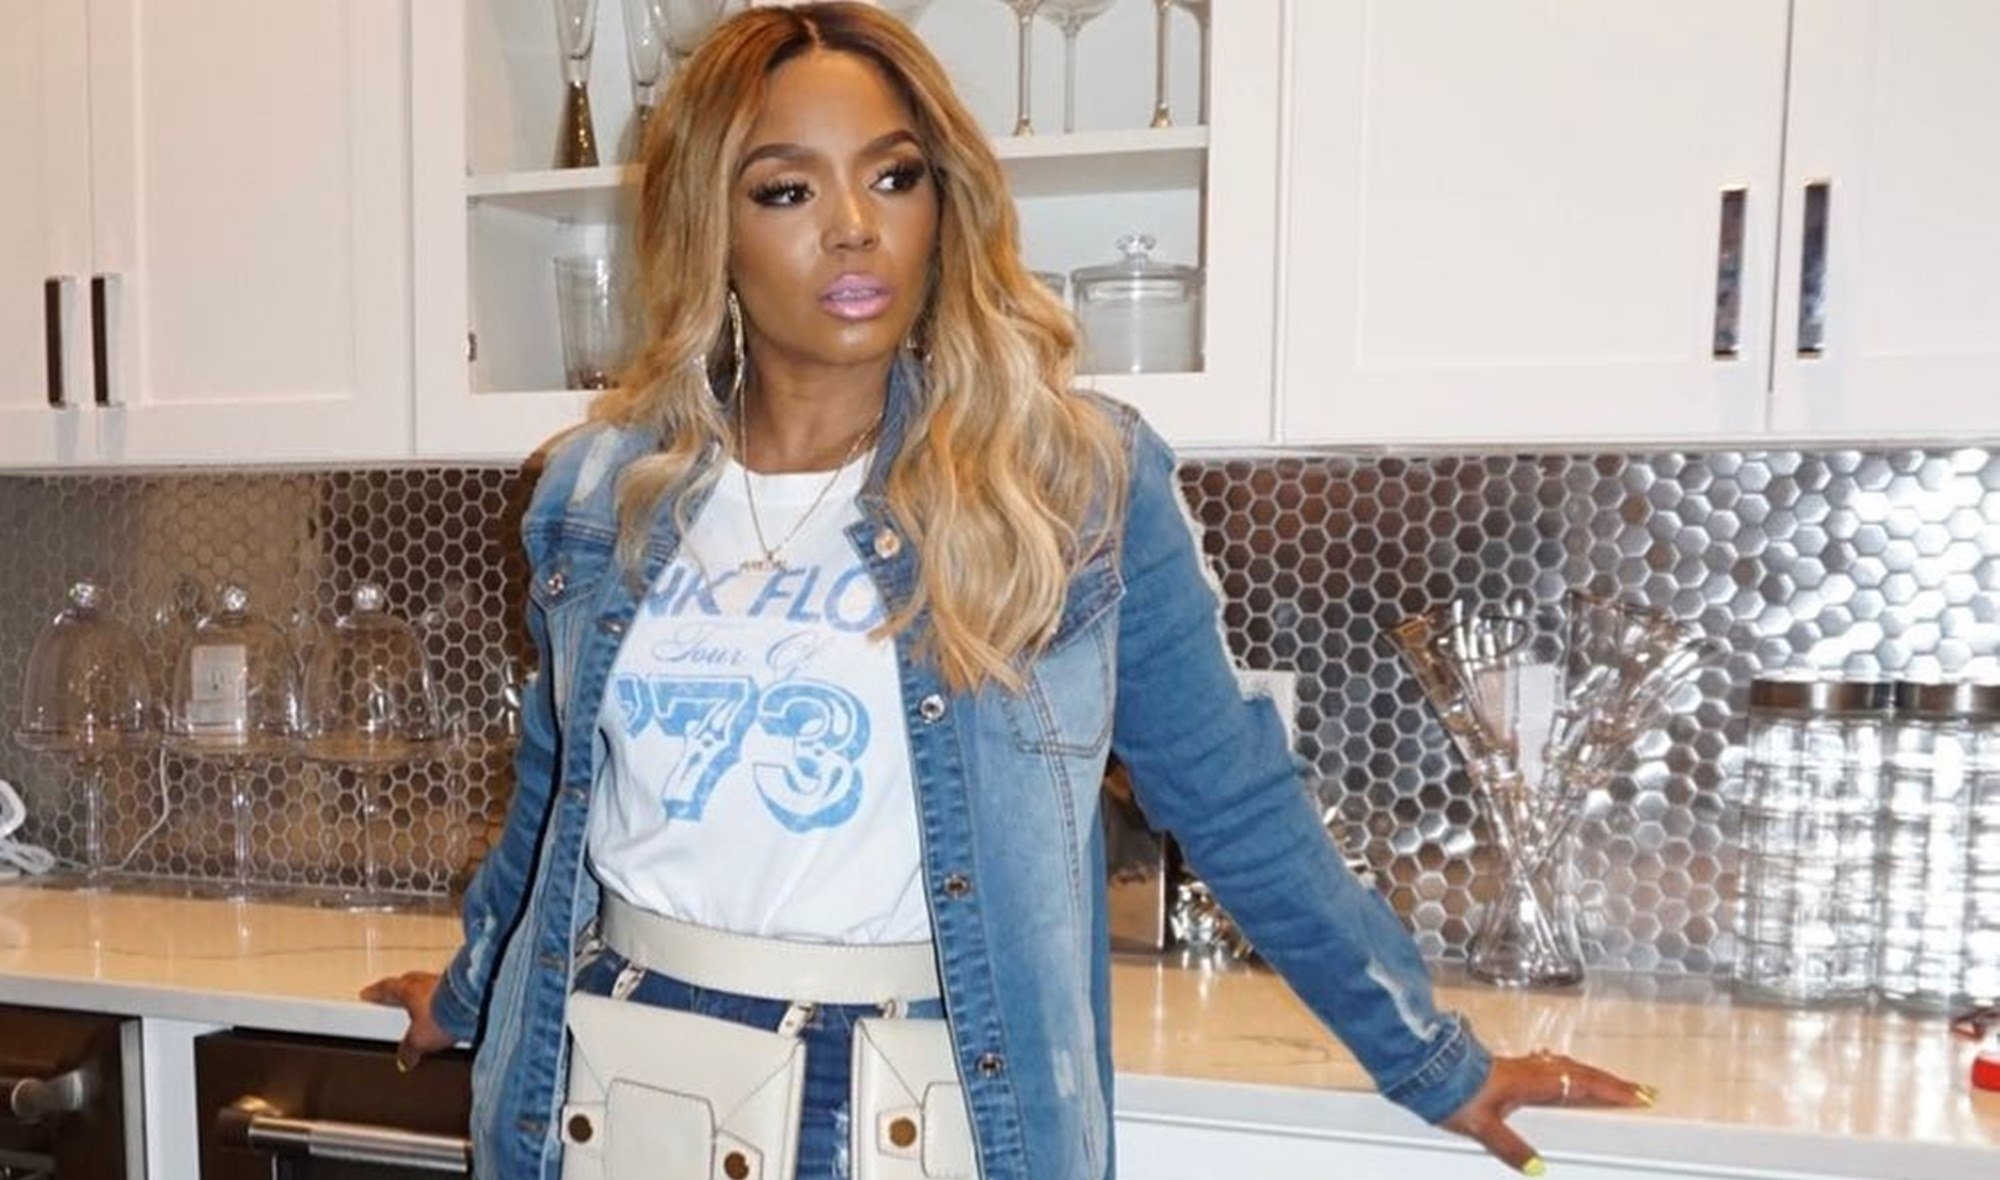 Rasheeda Frost Shares A Fun Workout Video - See Her Clip